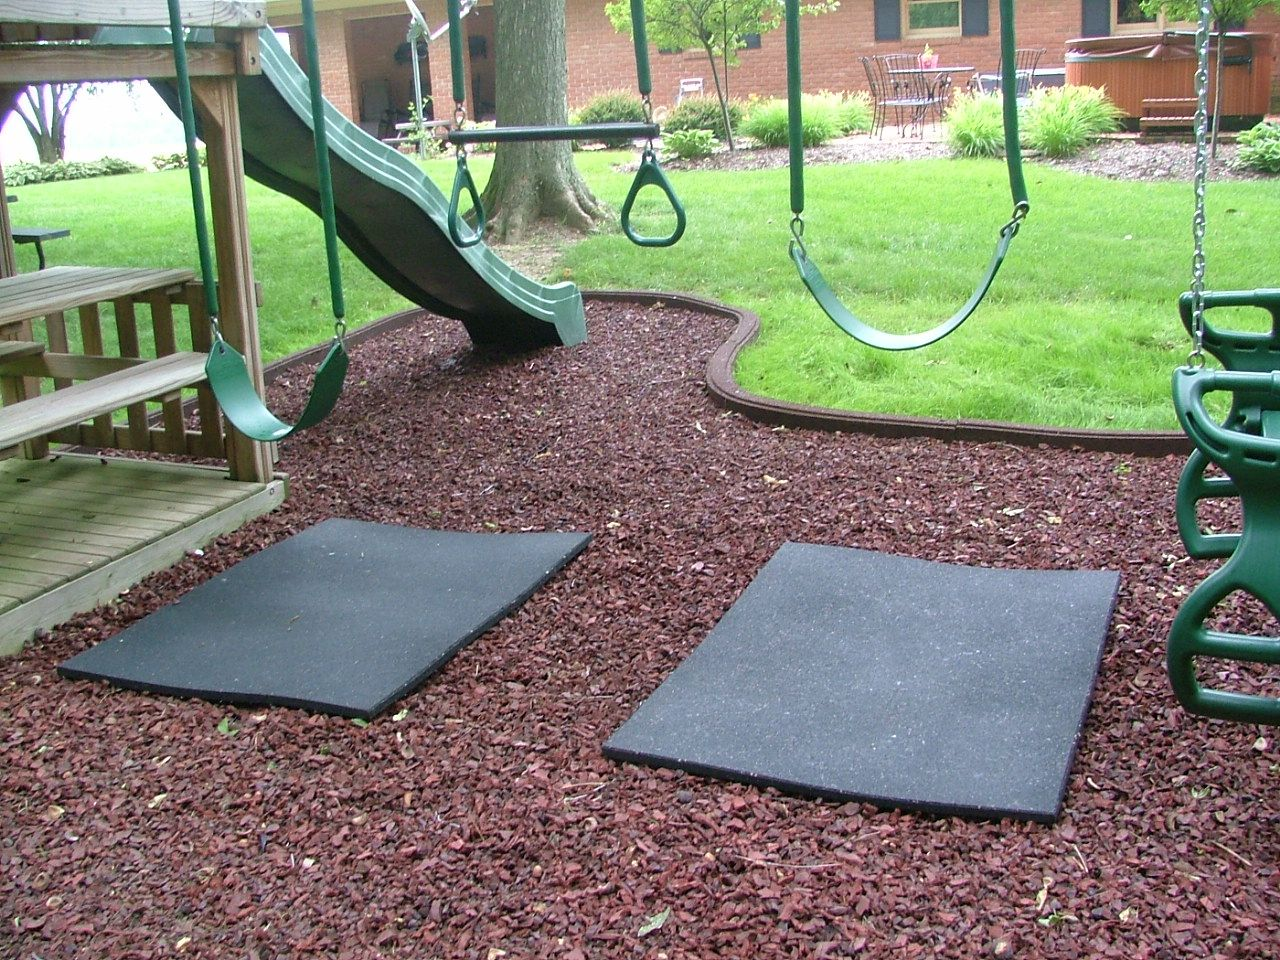 rubber mat under swings so you don't wear that mulched